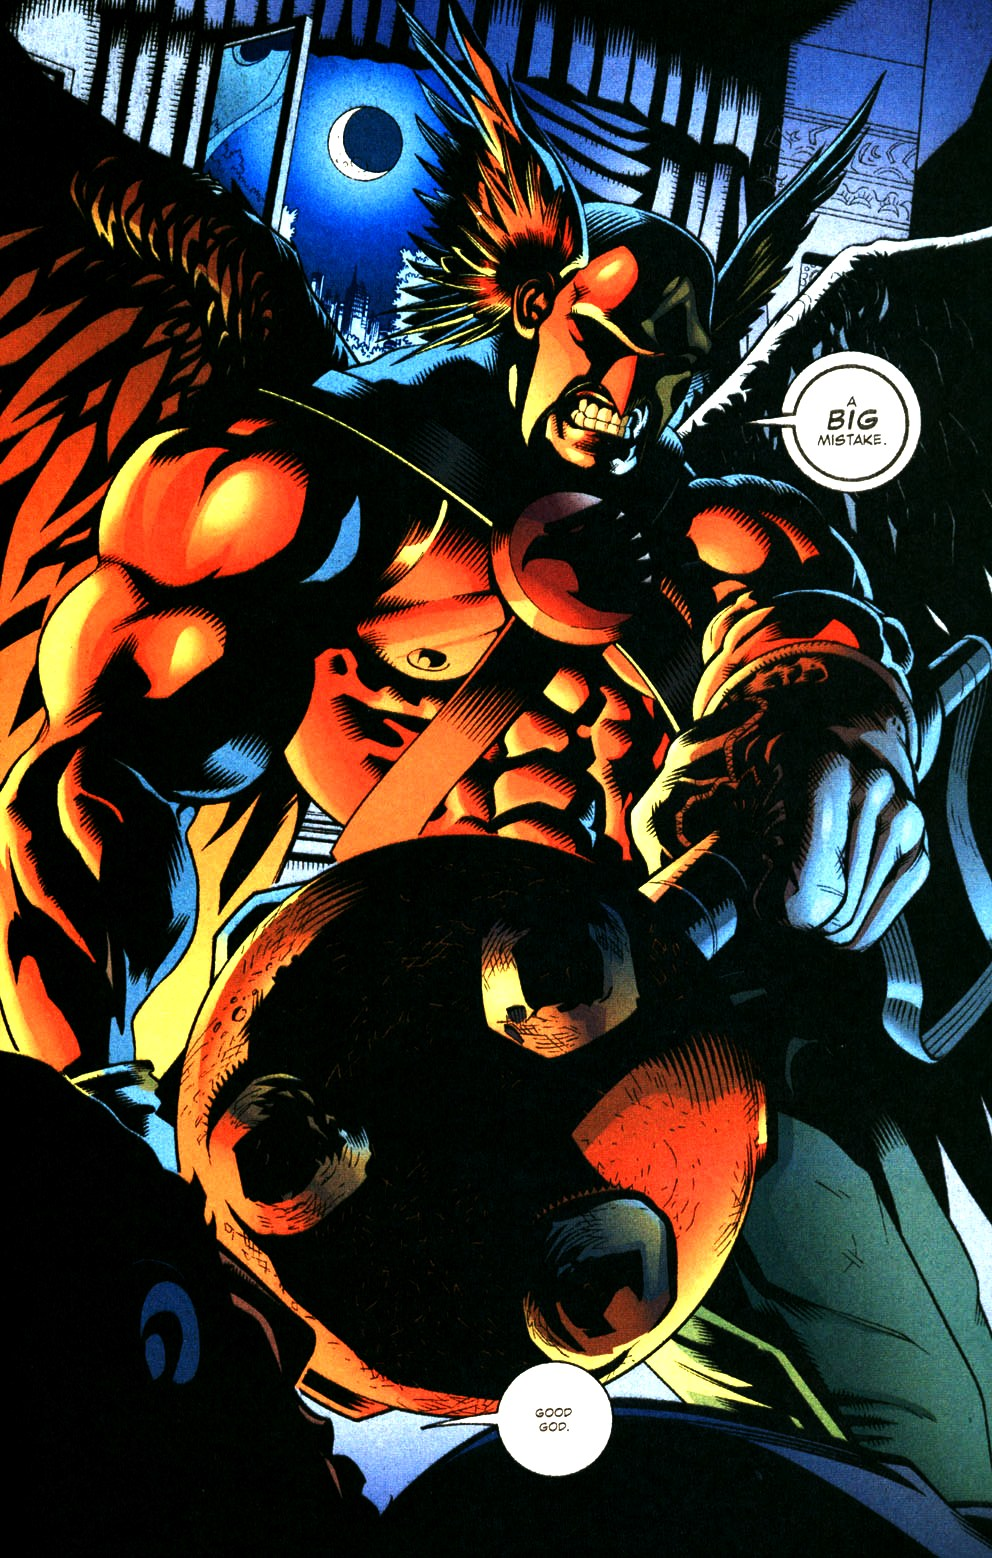 http://img3.wikia.nocookie.net/__cb20111128024024/marvel_dc/images/1/19/Hawkman_0025.jpg